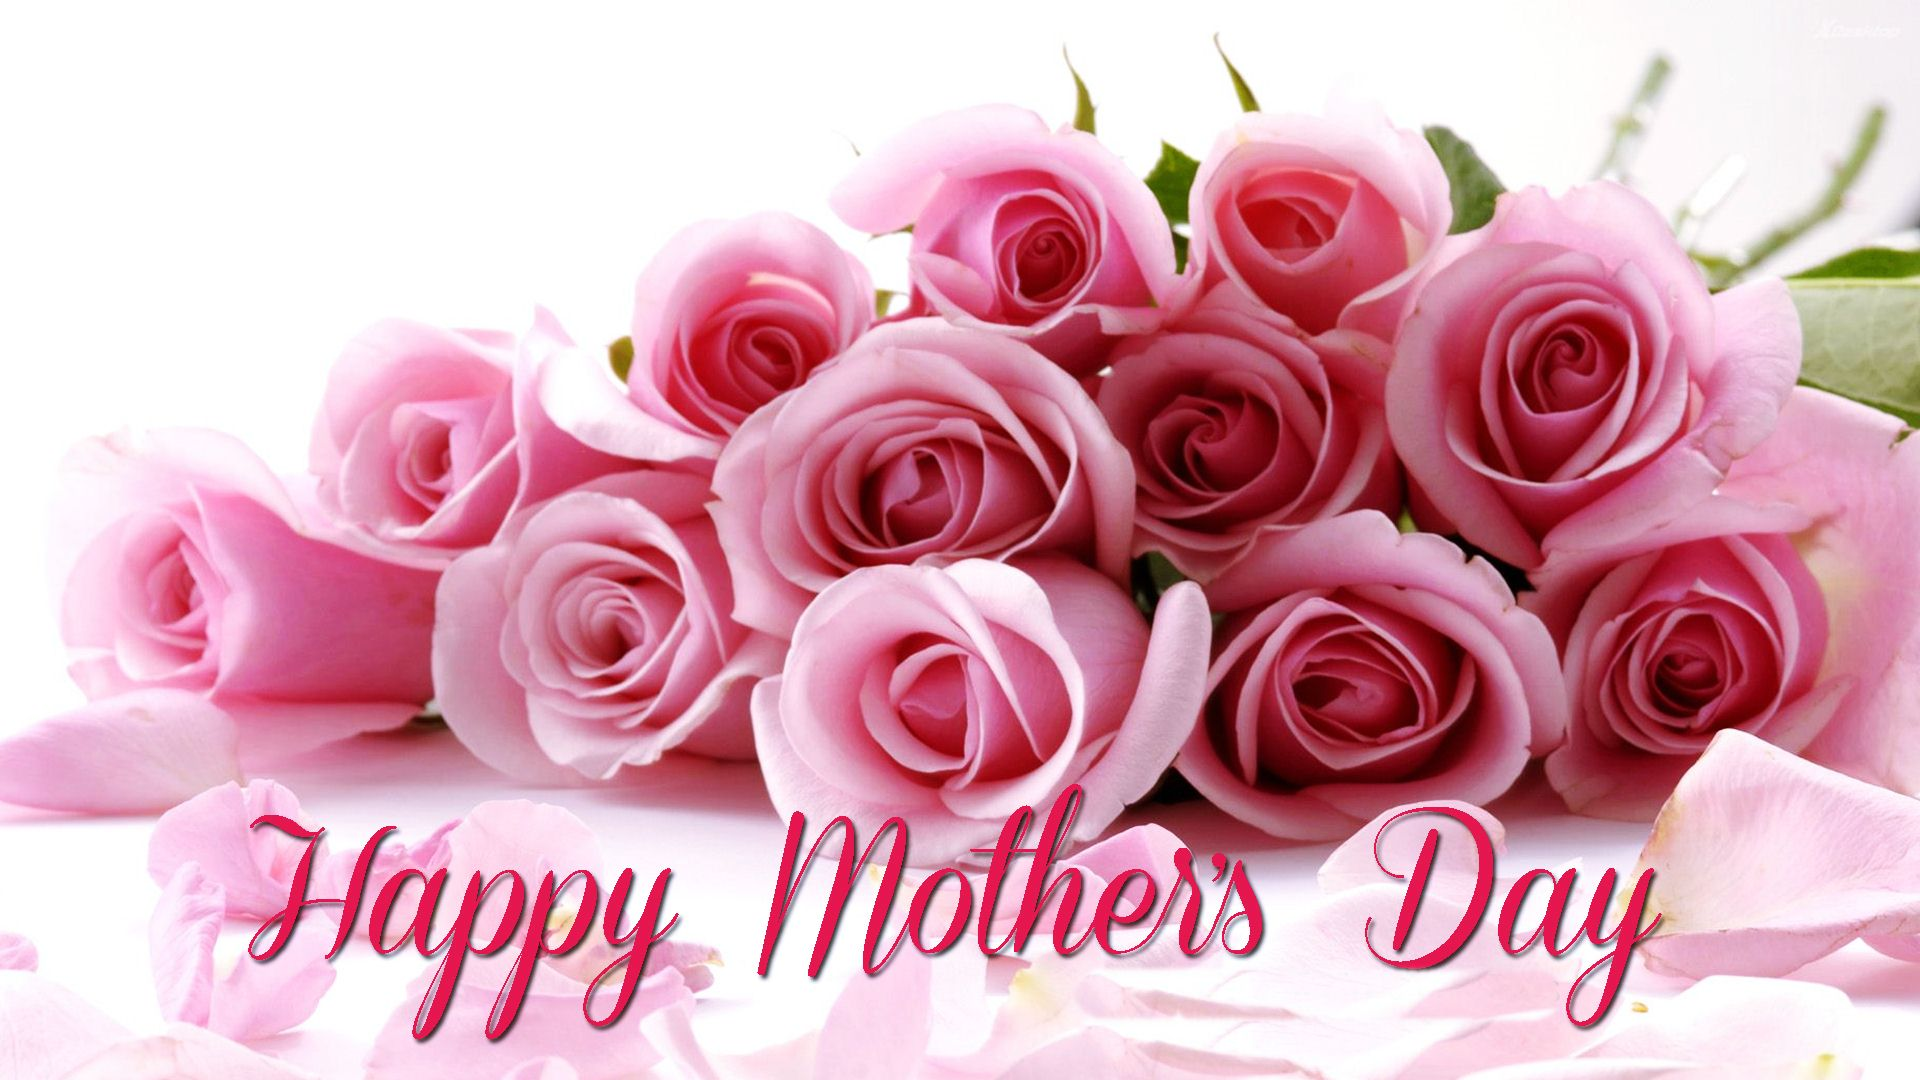 Happy Mothers Day Images 2020 Pictures Photos HD Wallpapers 1920x1080